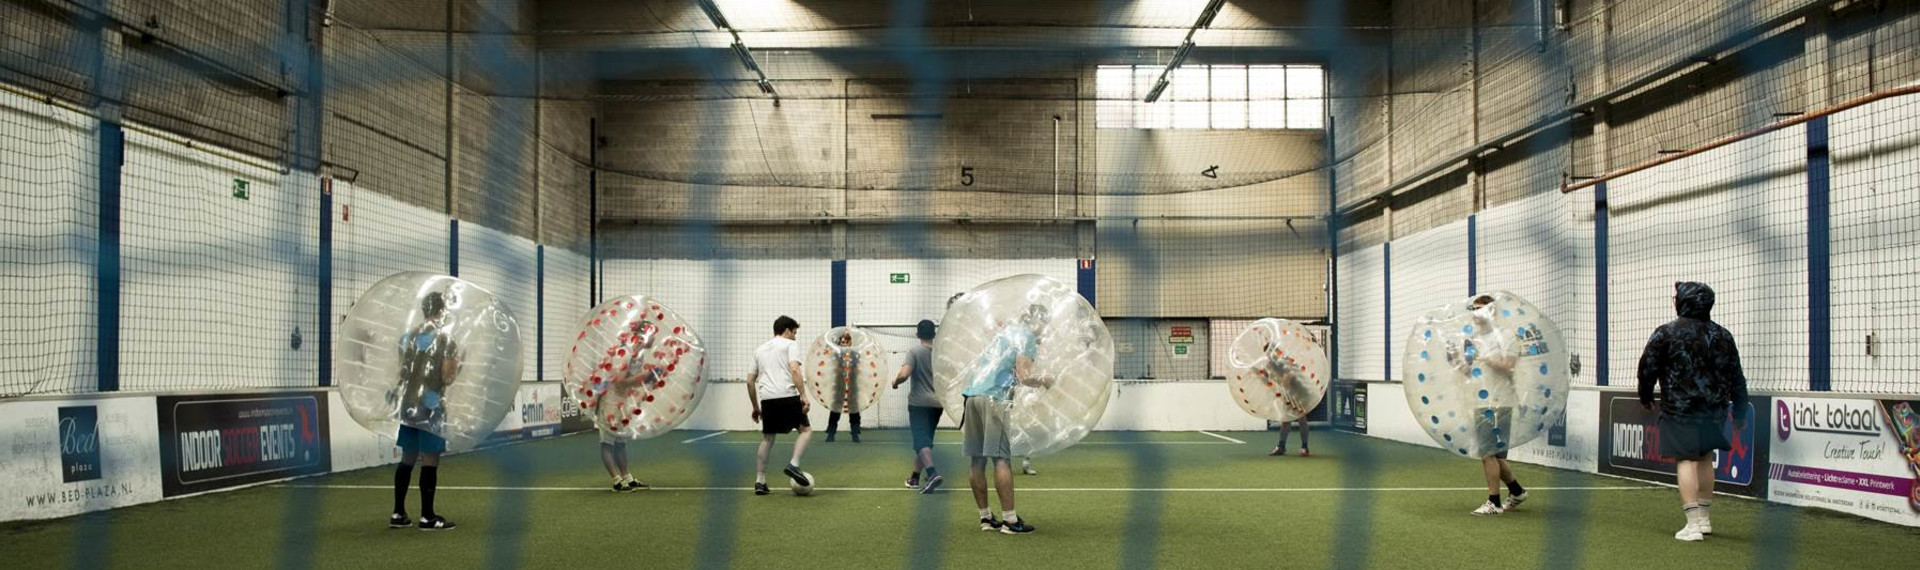 Amsterdam Bubble Football Indoor image